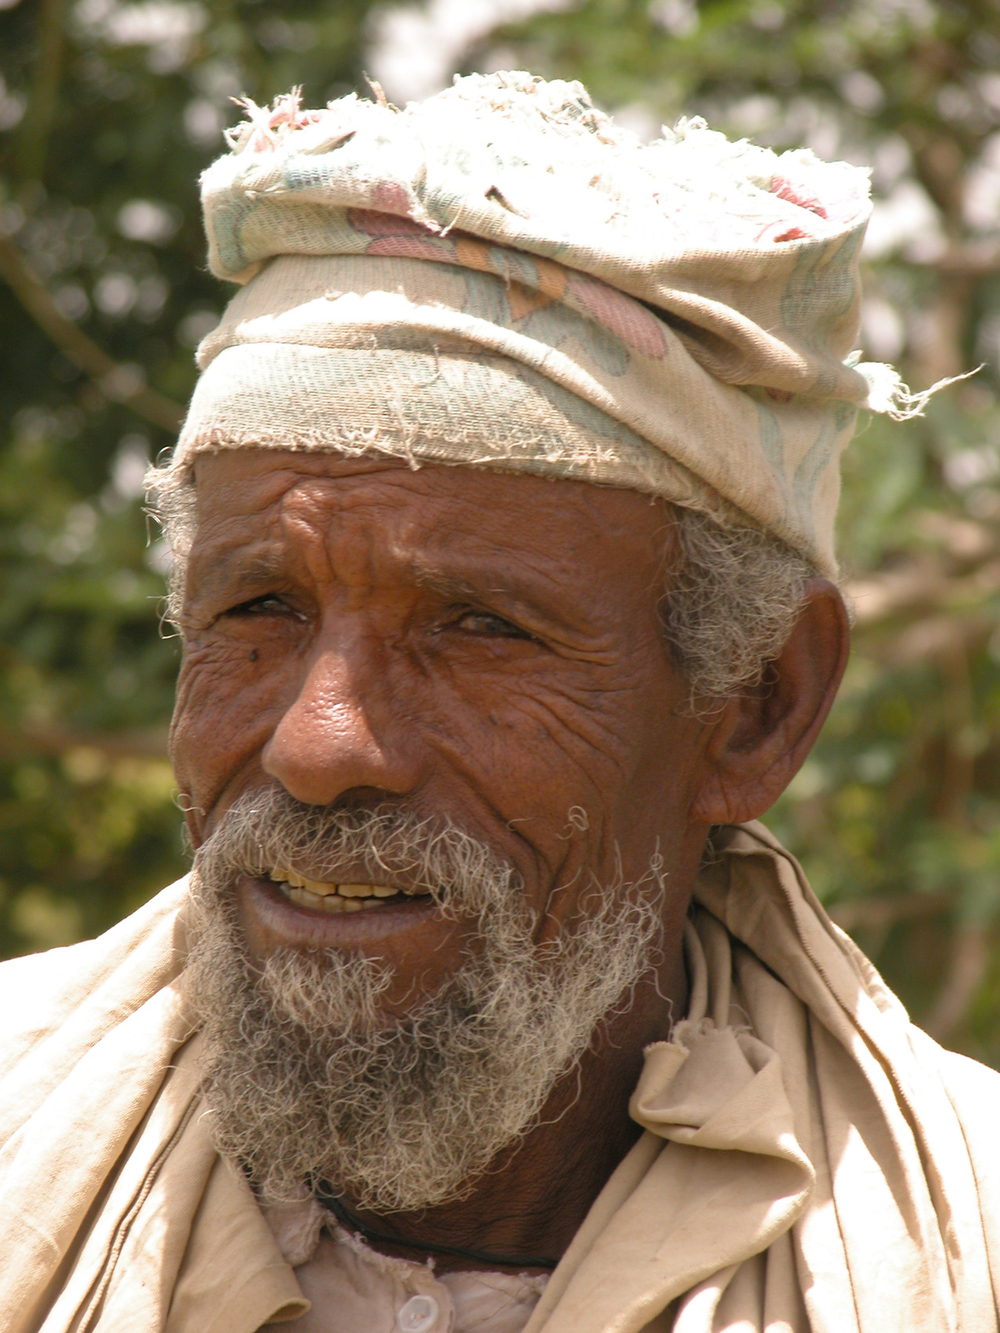 Melkae Brhanat Tesfay Gebremariam, a farmer in Tigray who lost two of his children in the famine in 1984